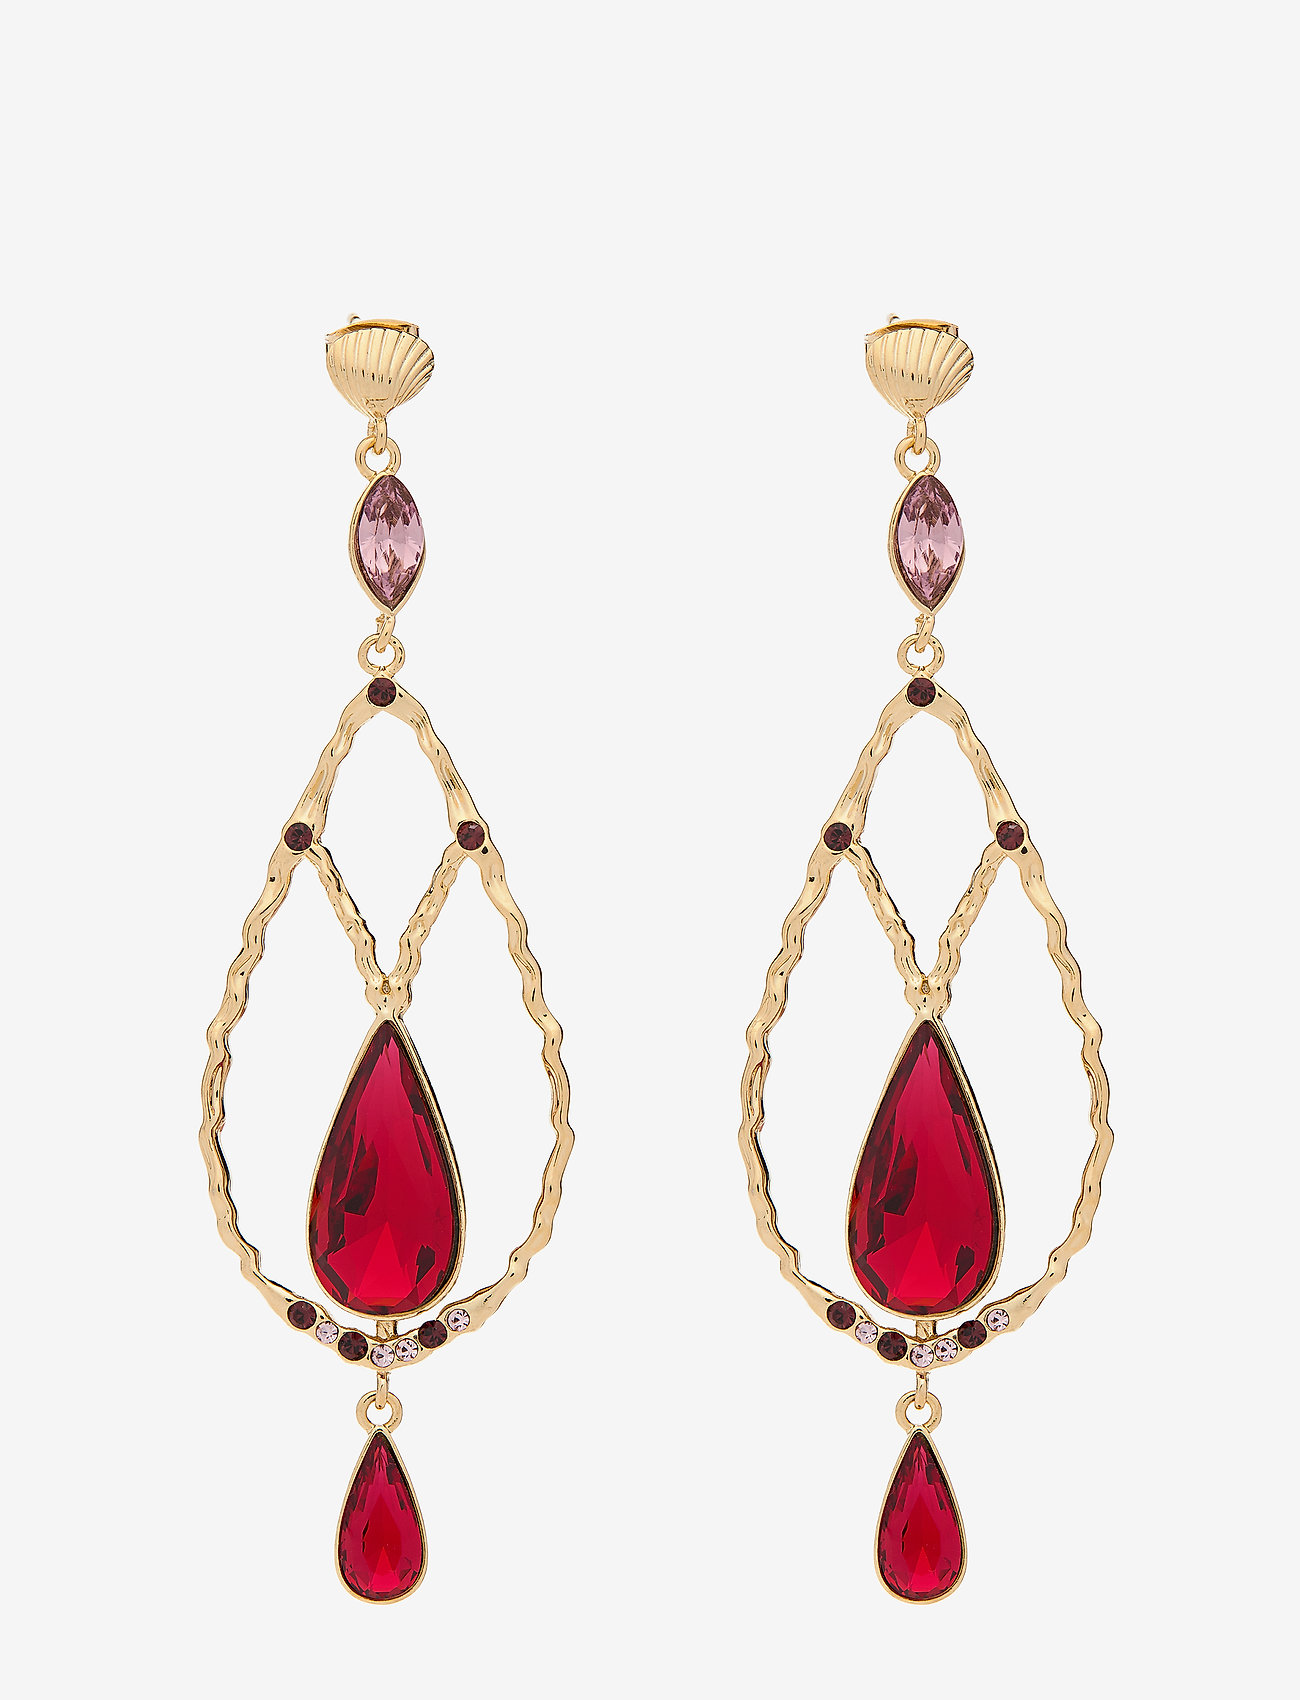 LILY AND ROSE - Garbo earrings - Scarlet - statement - scarlet